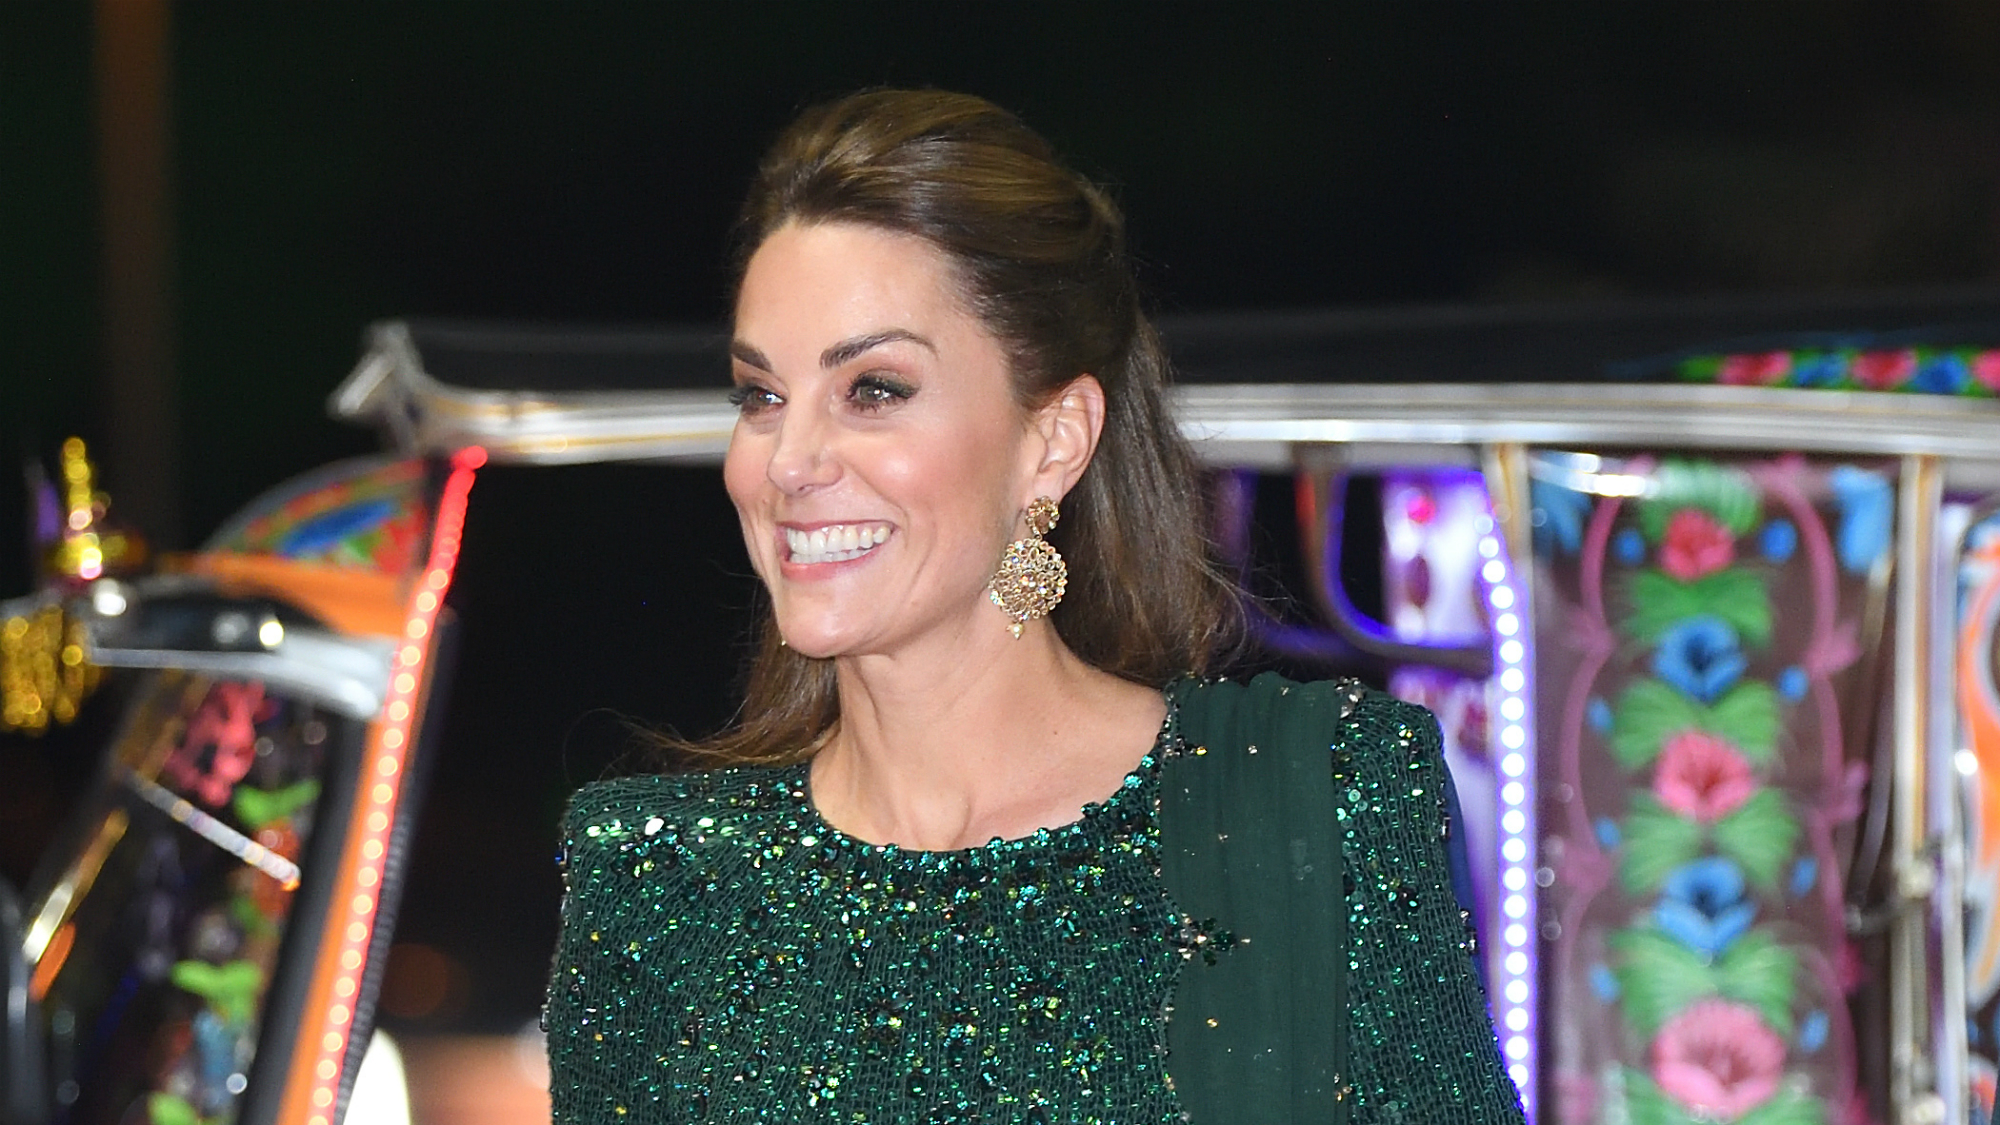 Prince William and Kate Middleton just arrived in a tuk tuk and we can't stop watching the video